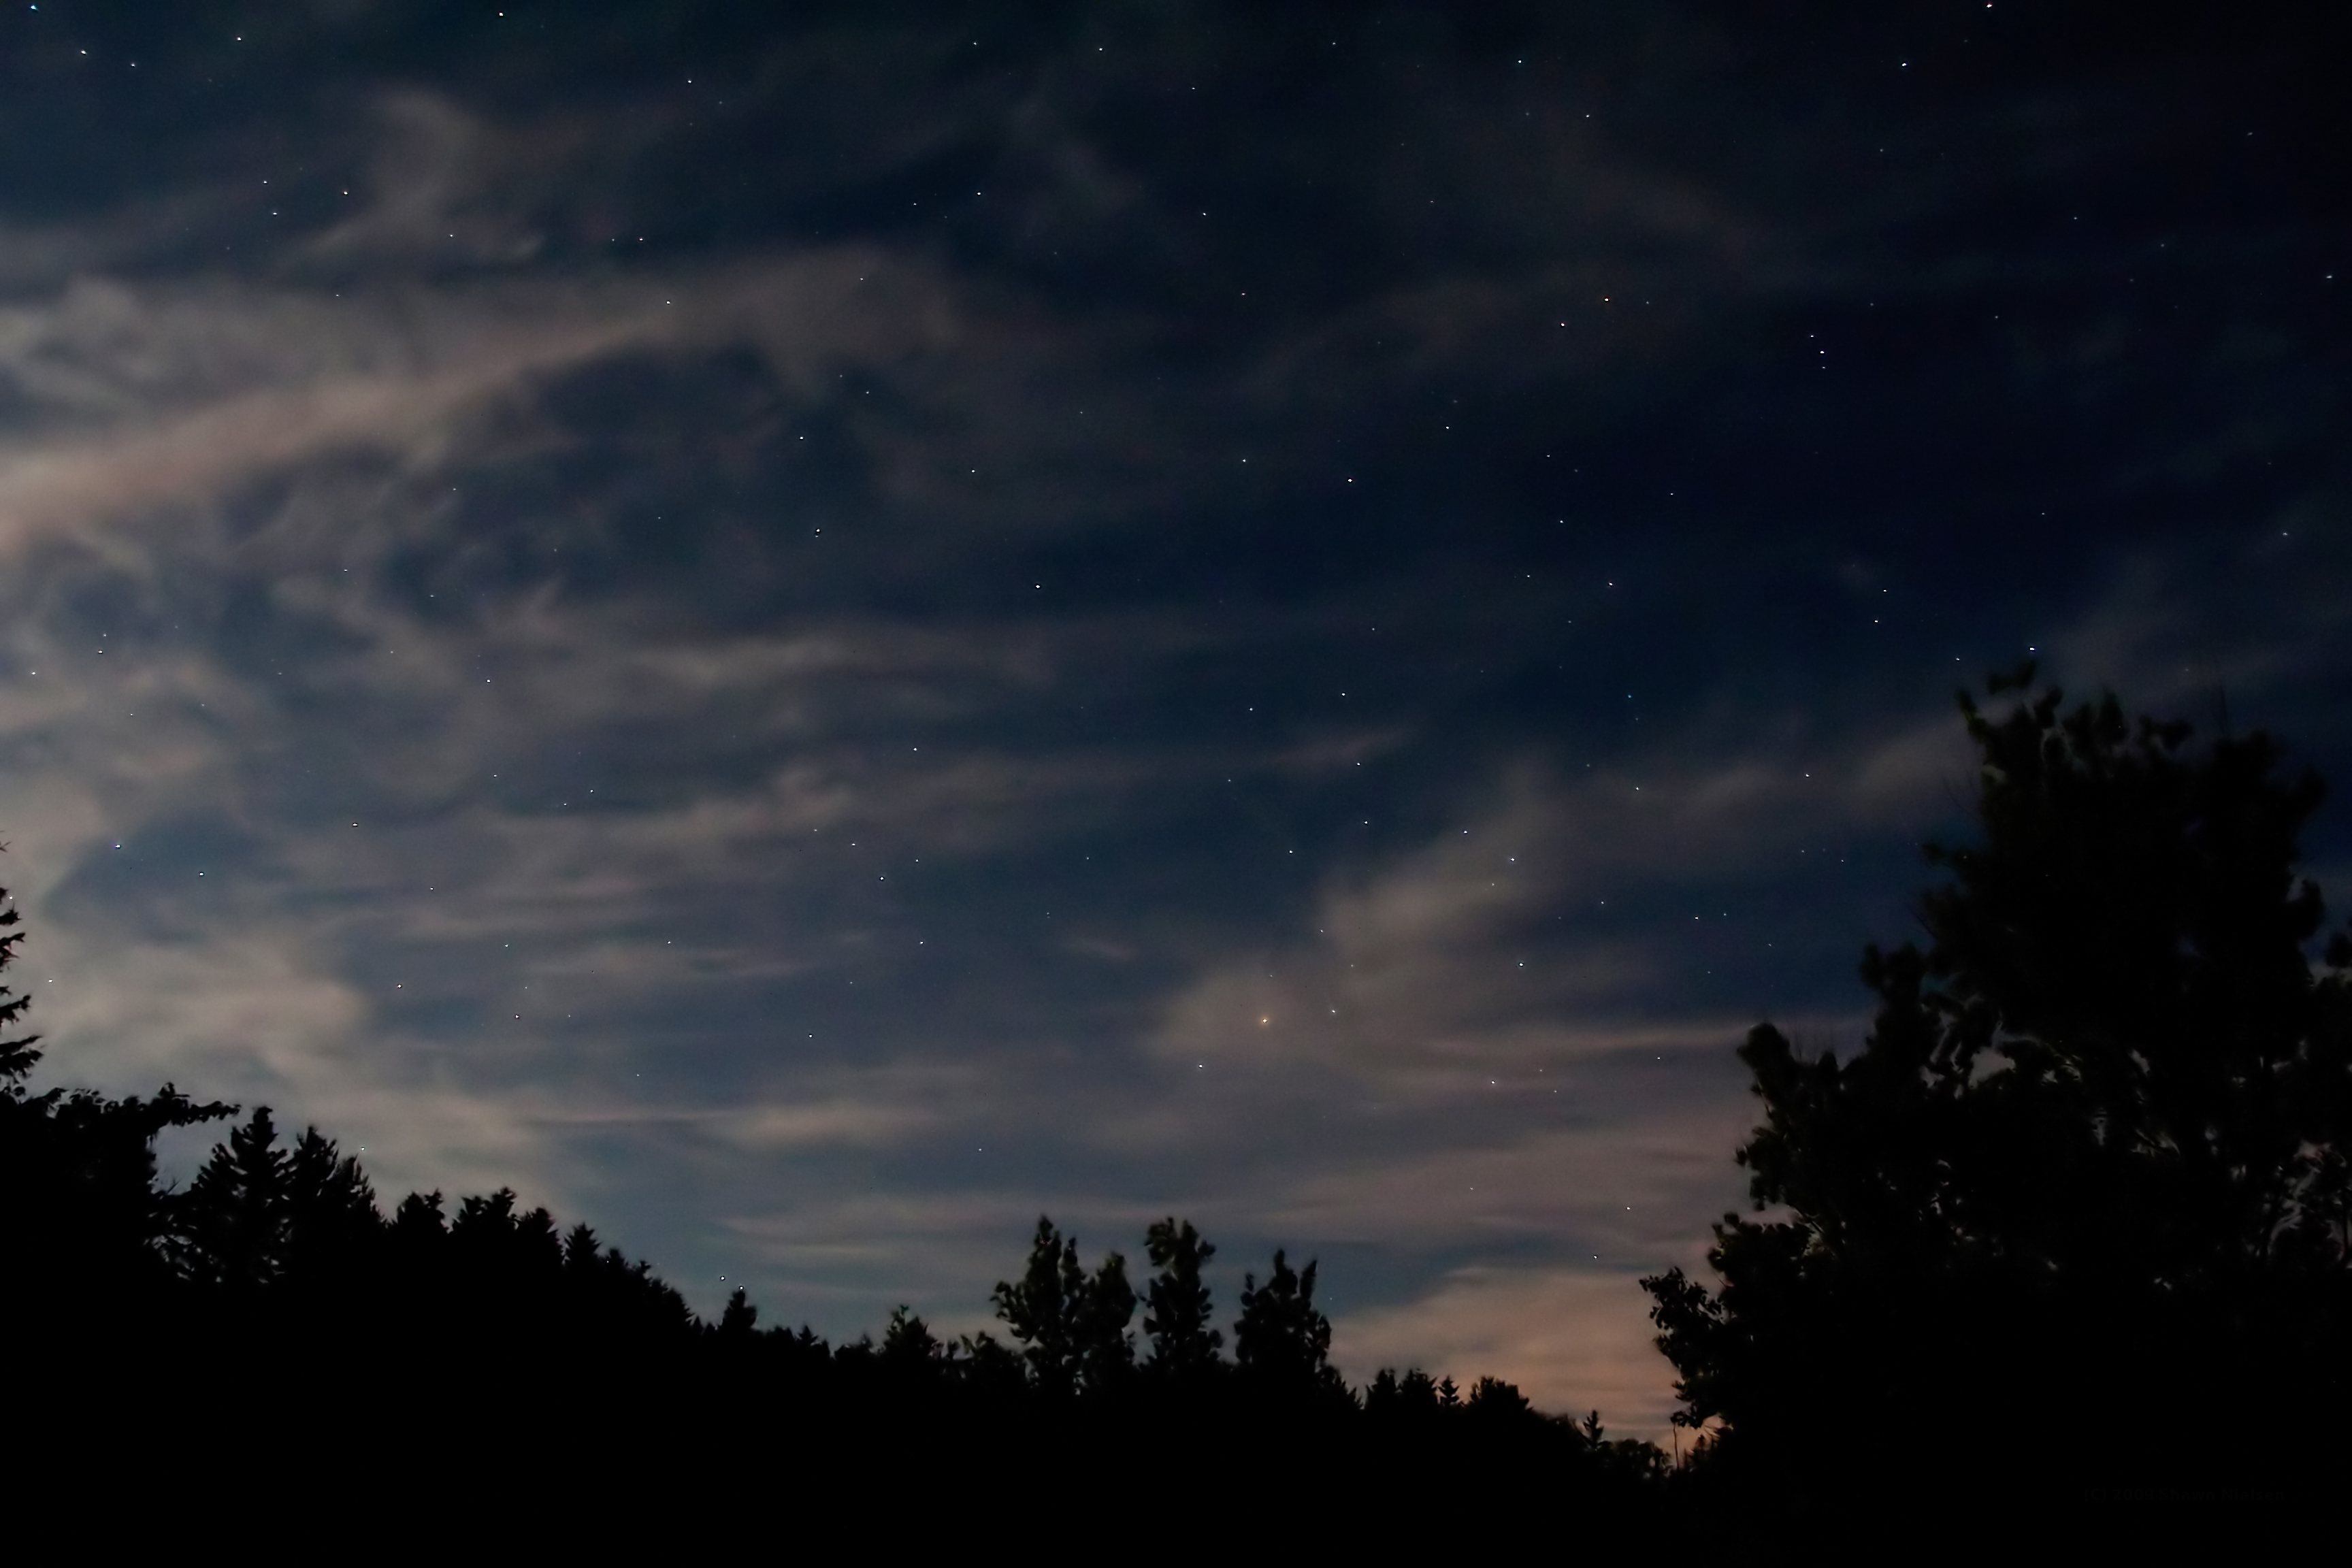 Whispy Moon clouds and the summer star Antares. Shawn Nielsen, 2009